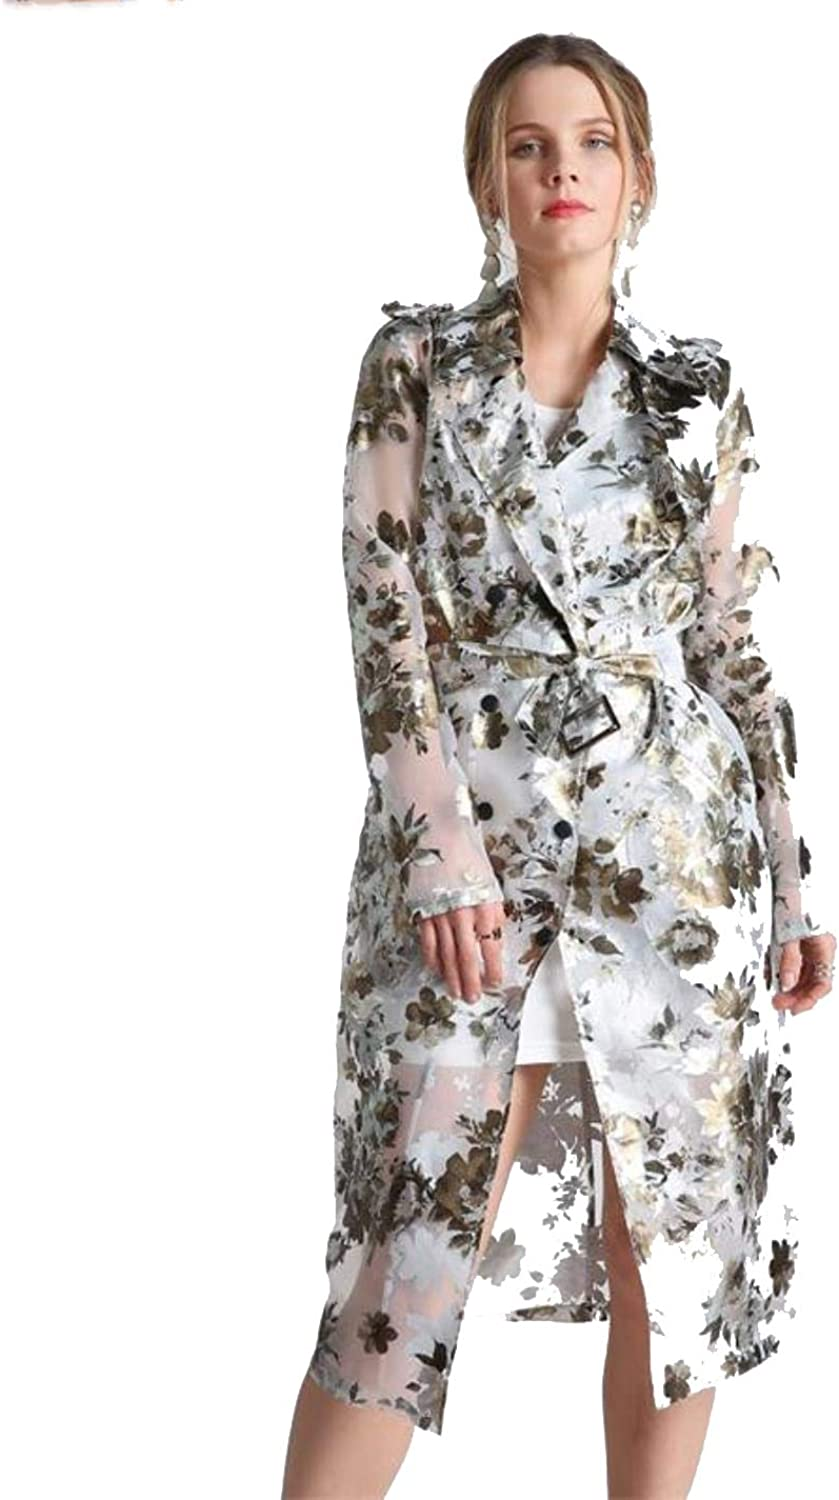 QiGmZM Sexy Women Transparent Fashion Floral Double Breasted Long Outwear